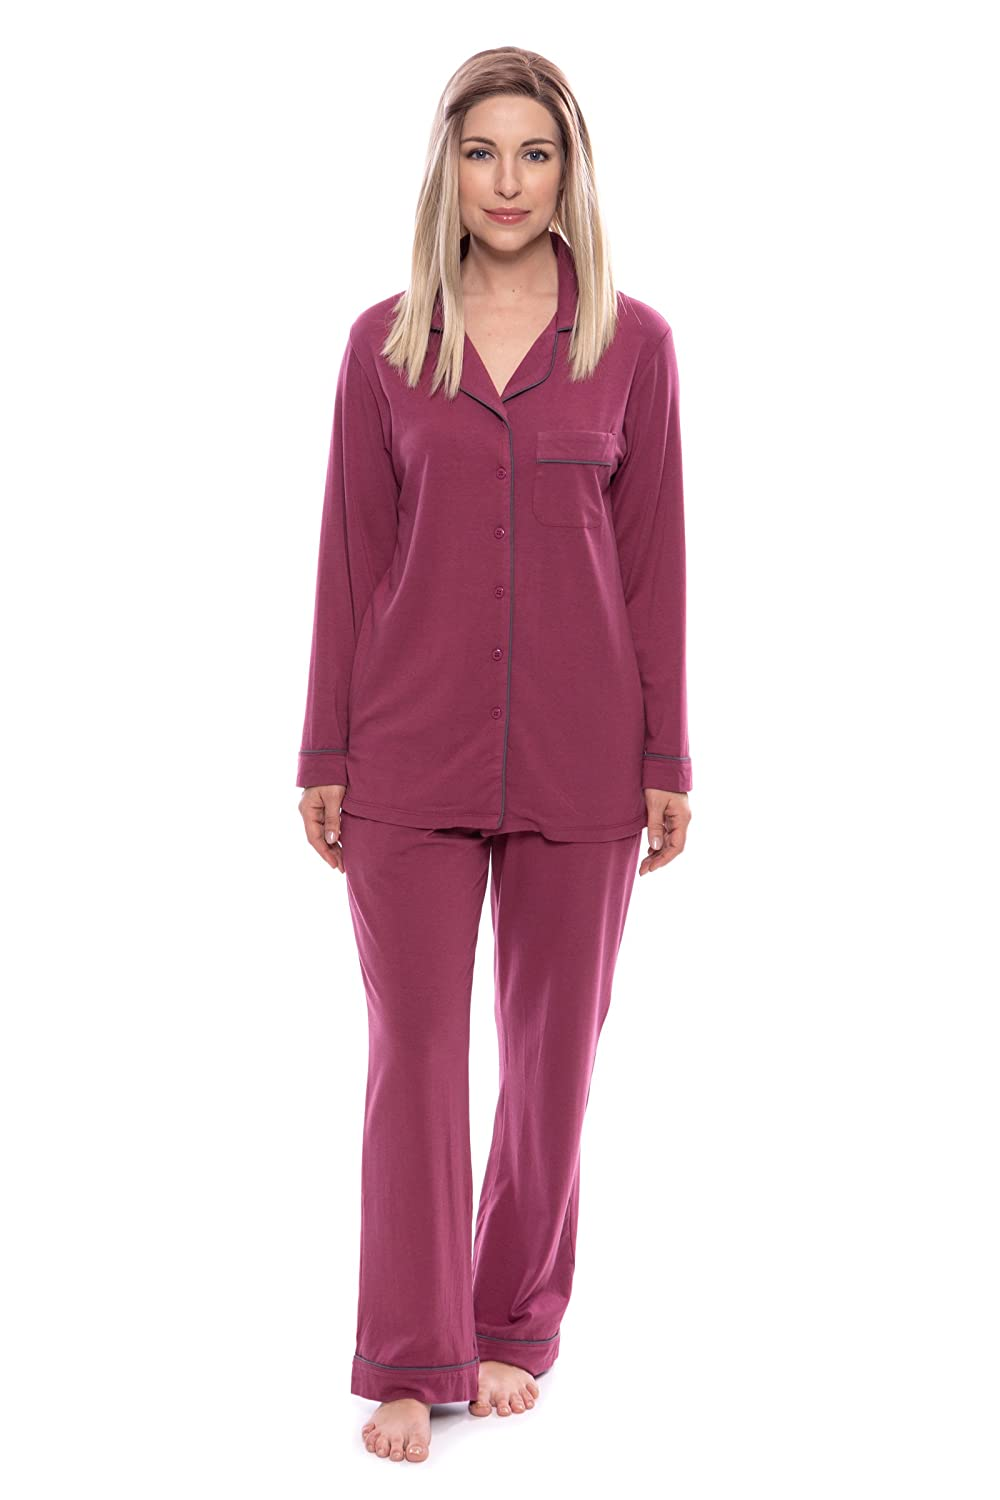 Women's Button-Up Sleepwear Set (Classic Comfort) Eco-Friendly Gifts by Texere